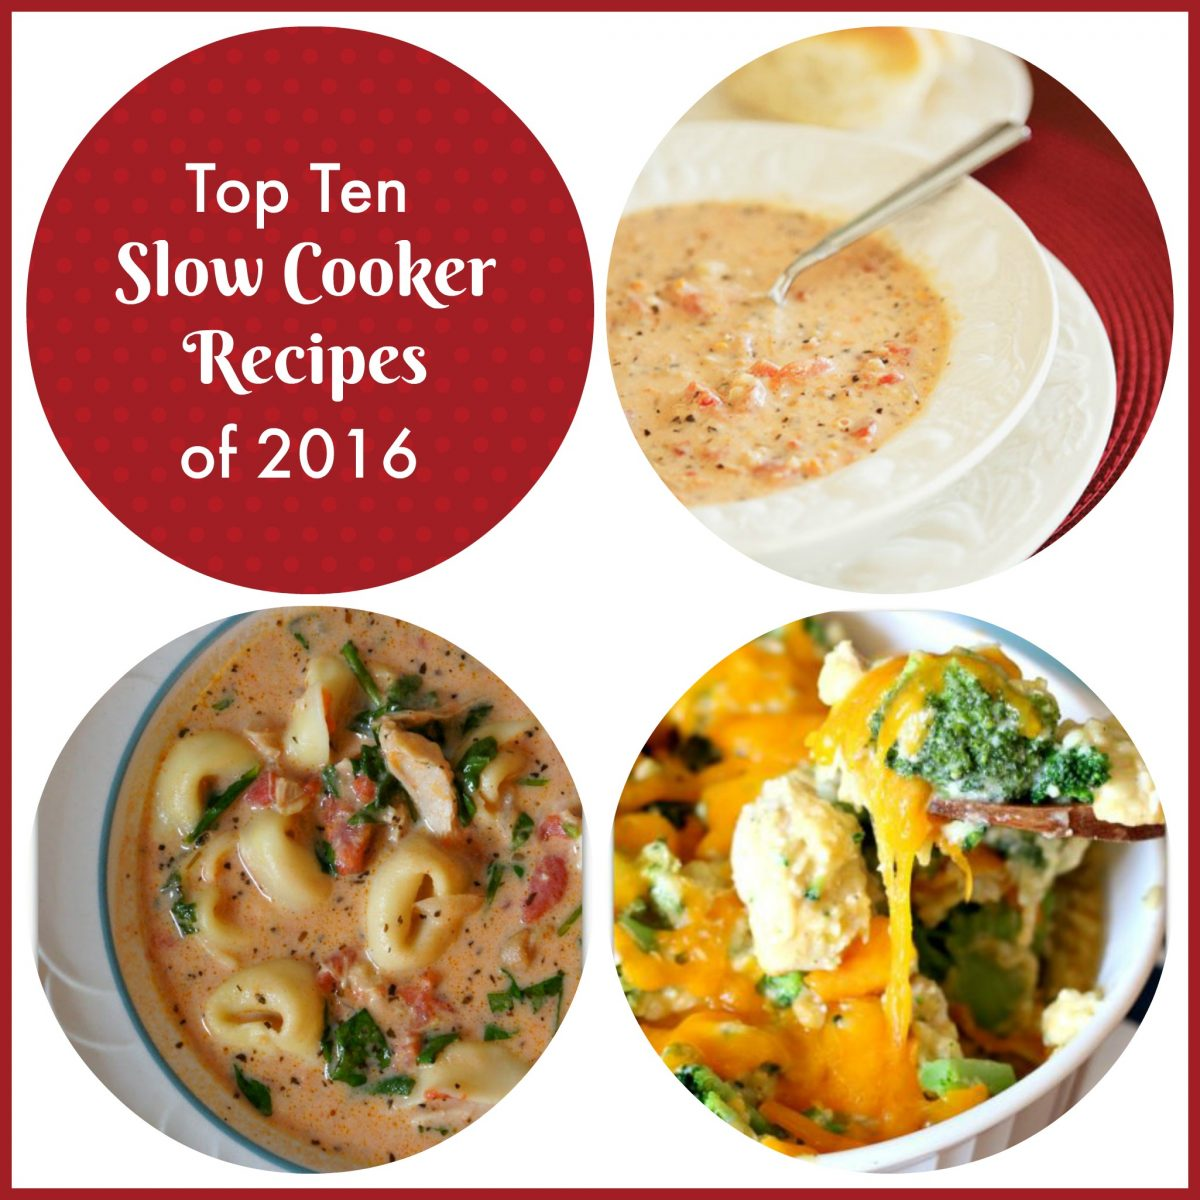 Top ten slow cooker recipes from 2016 on 365 Days of Slow Cooking